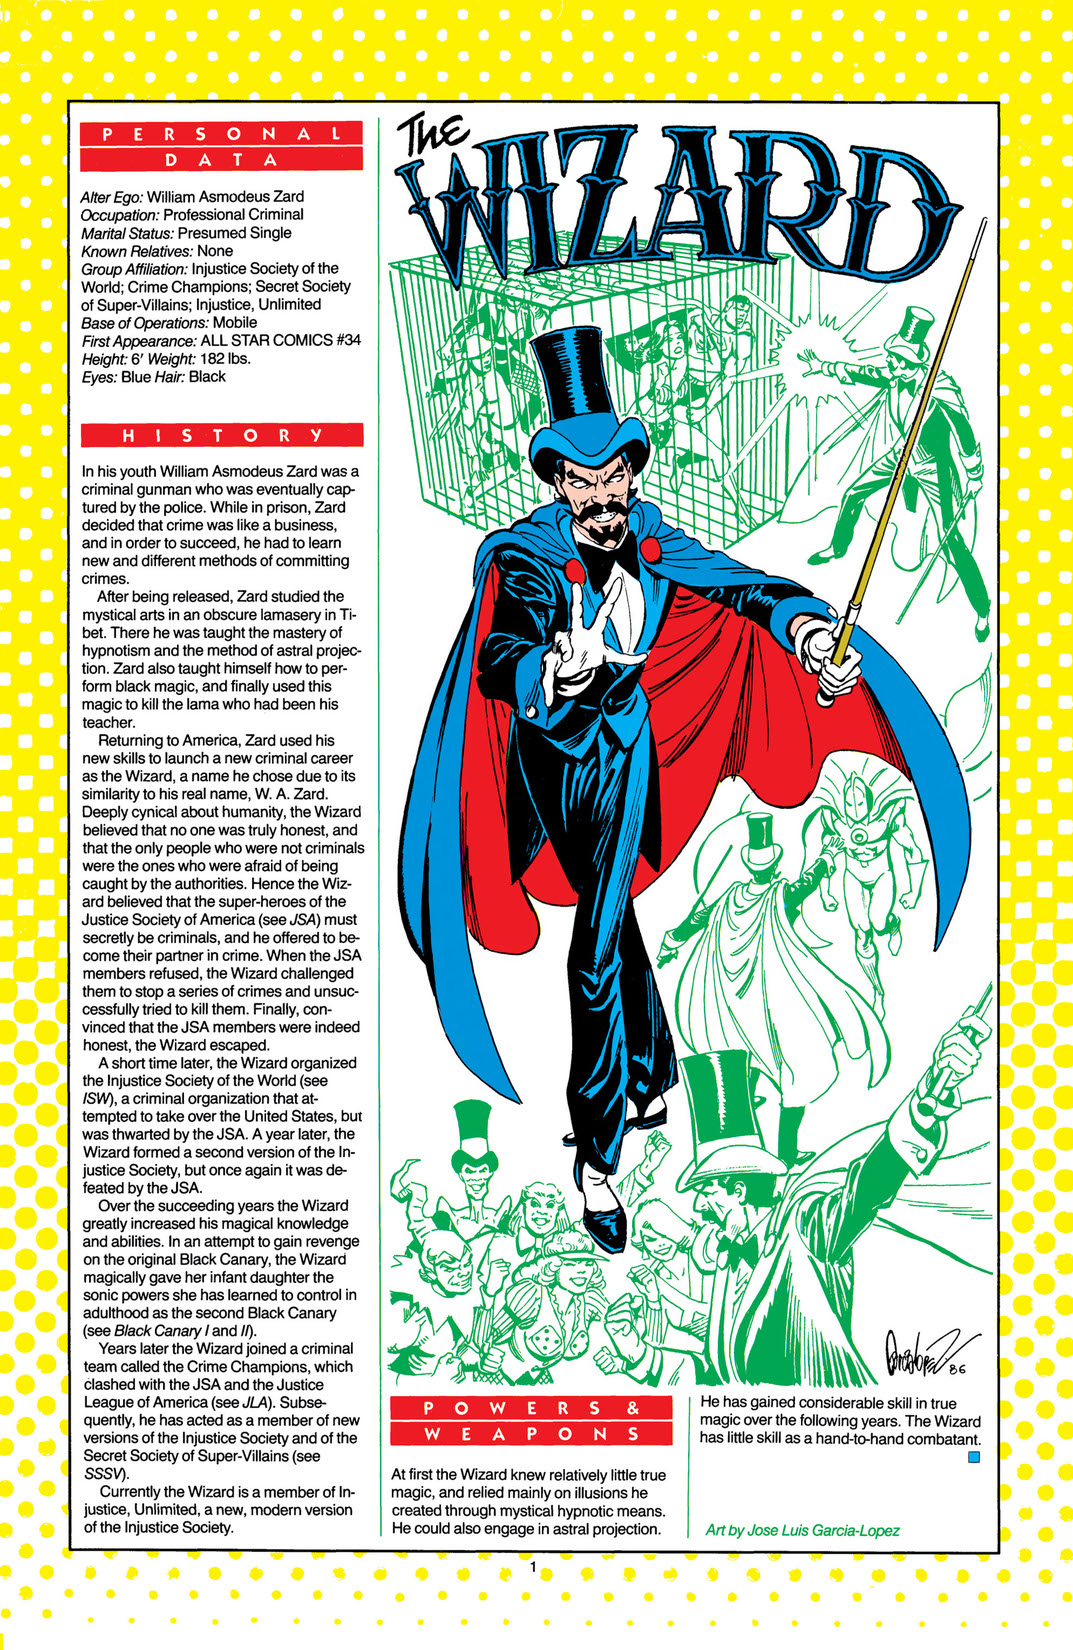 Read Who's Who: The Definitive Directory of the DC Universe